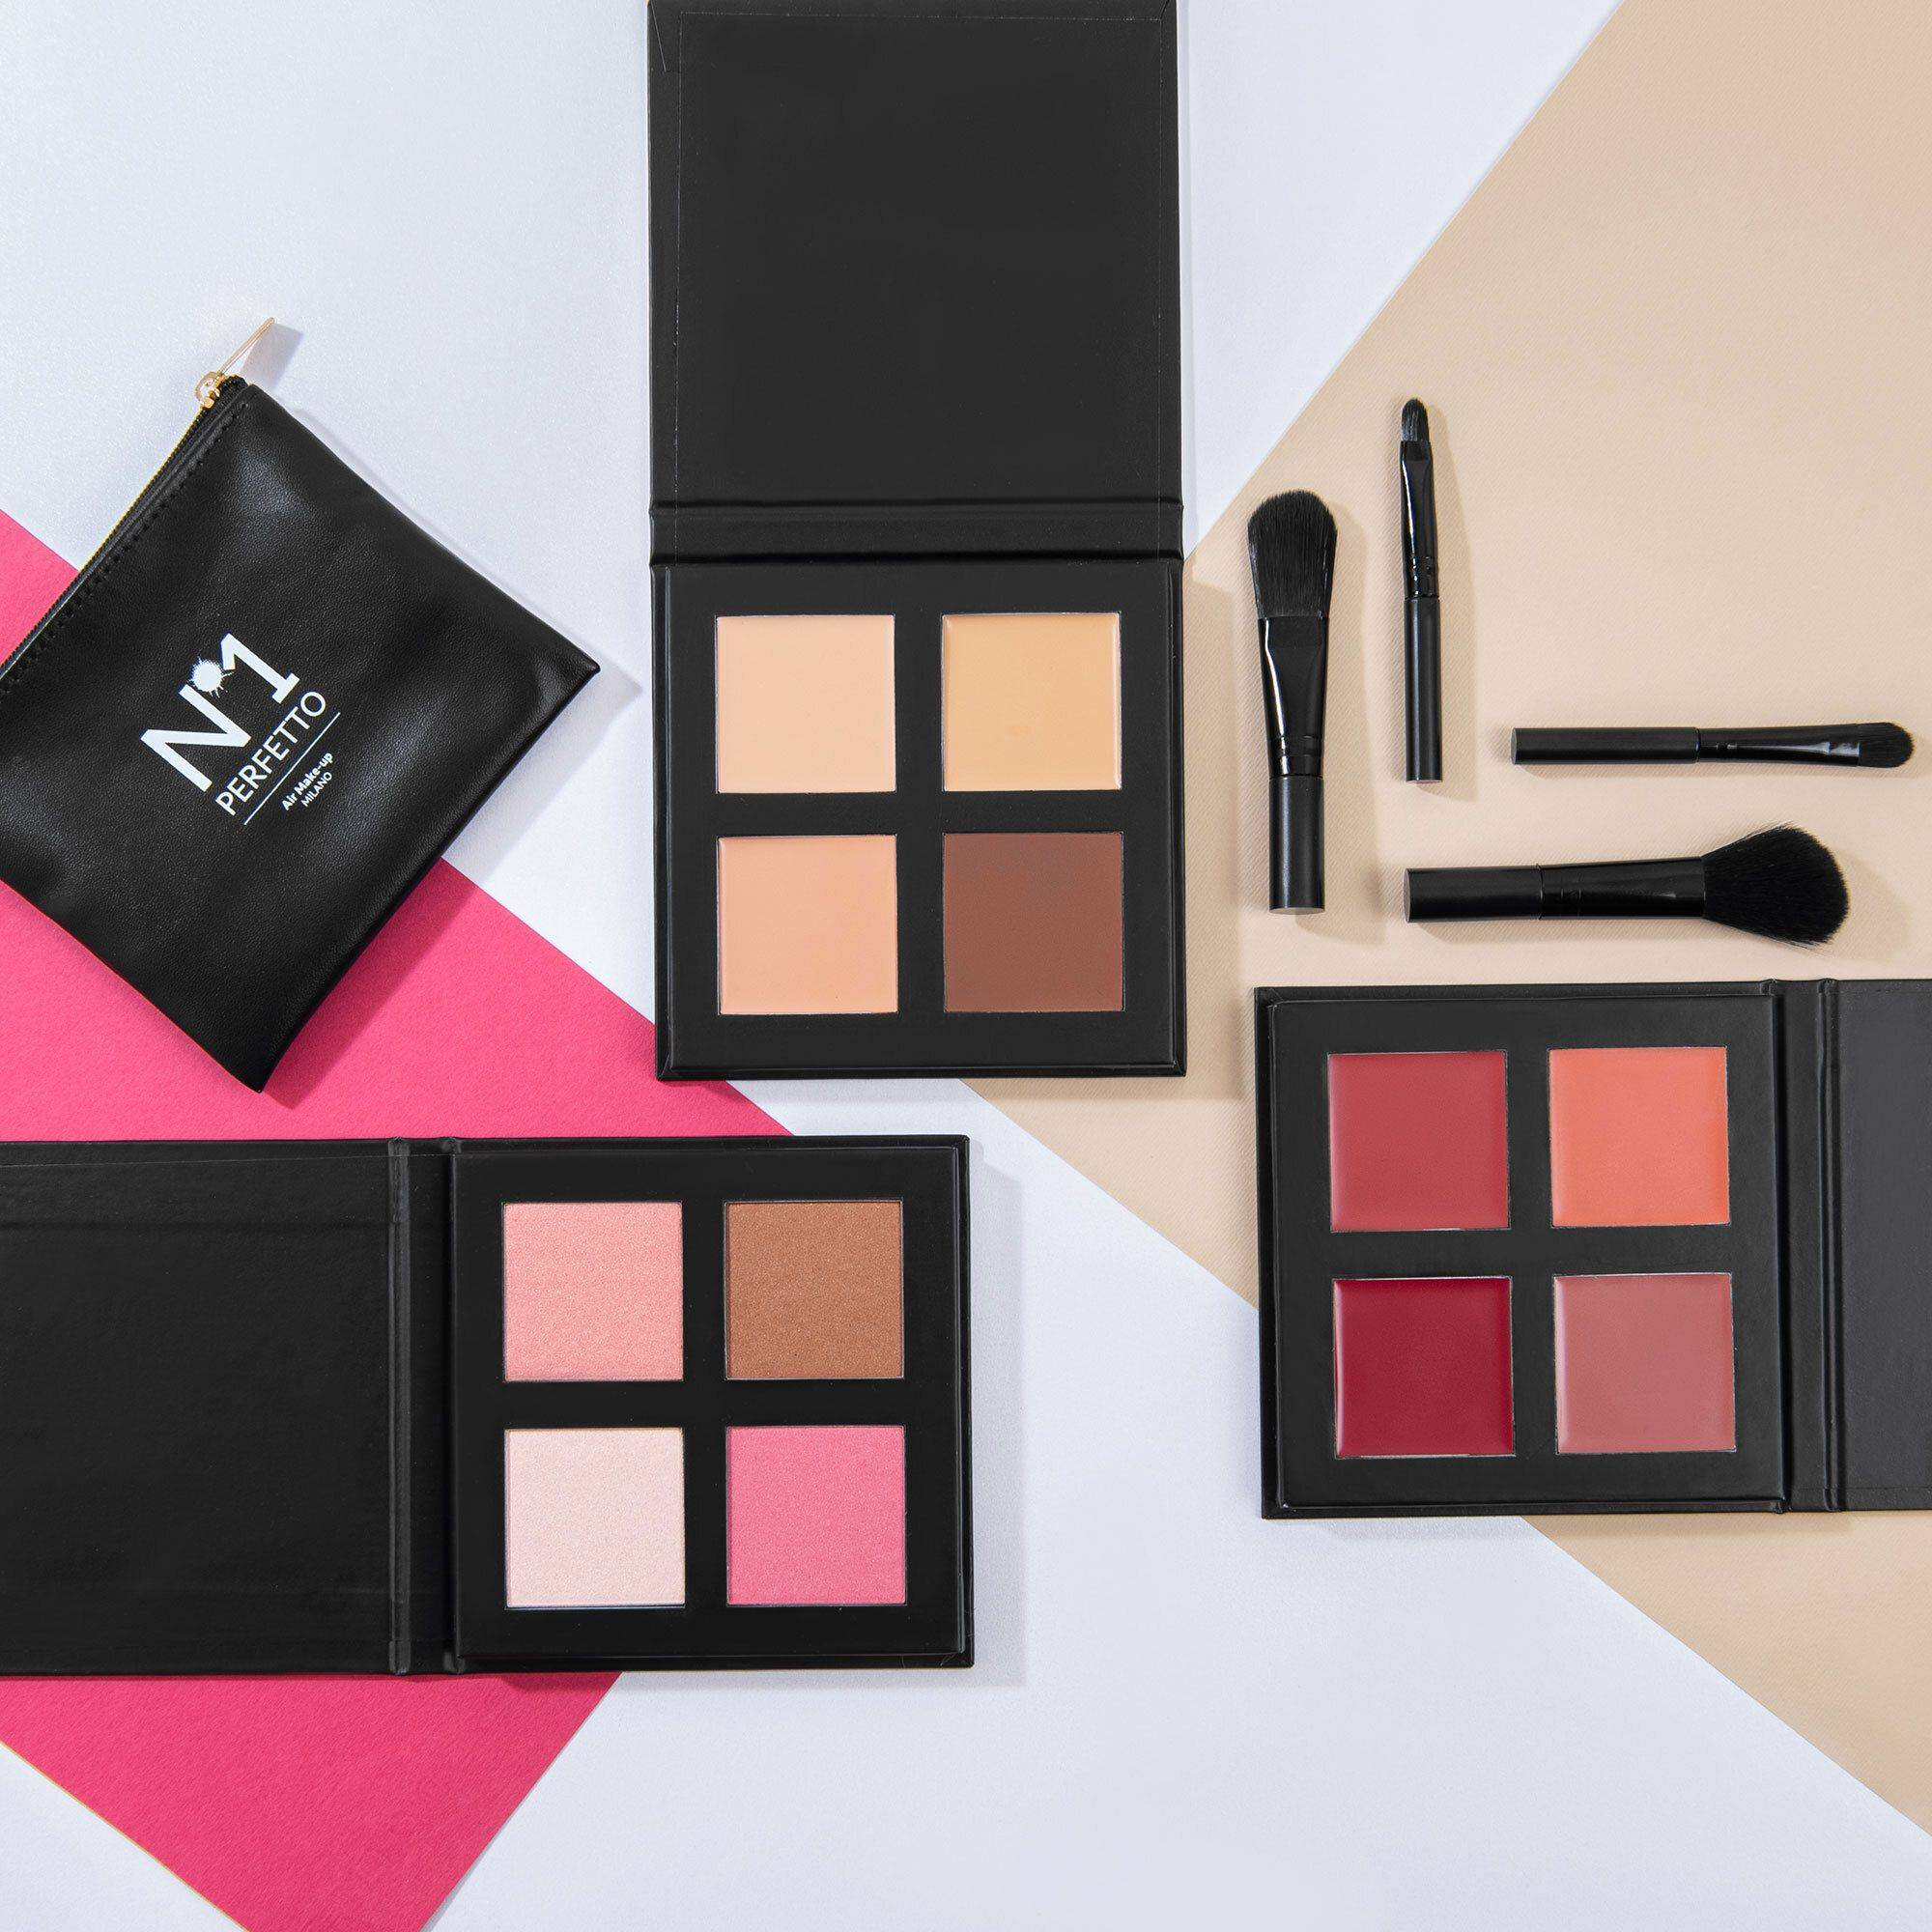 n°1 perfetto kit make up: 3 palette + 4 pennelli + beauty box